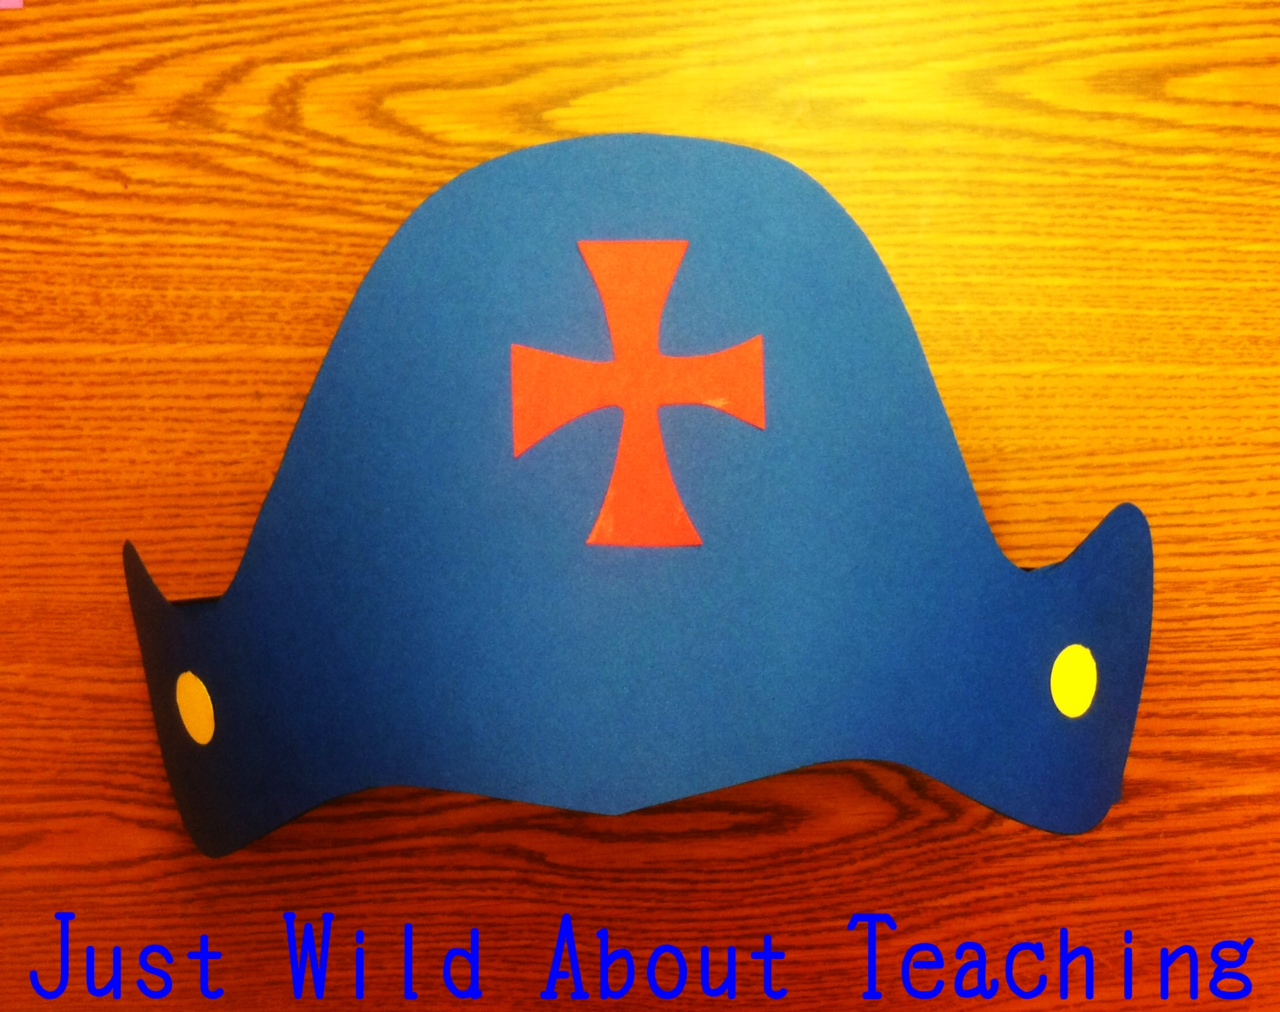 Just Wild About Teaching Olbut Gooreplaced